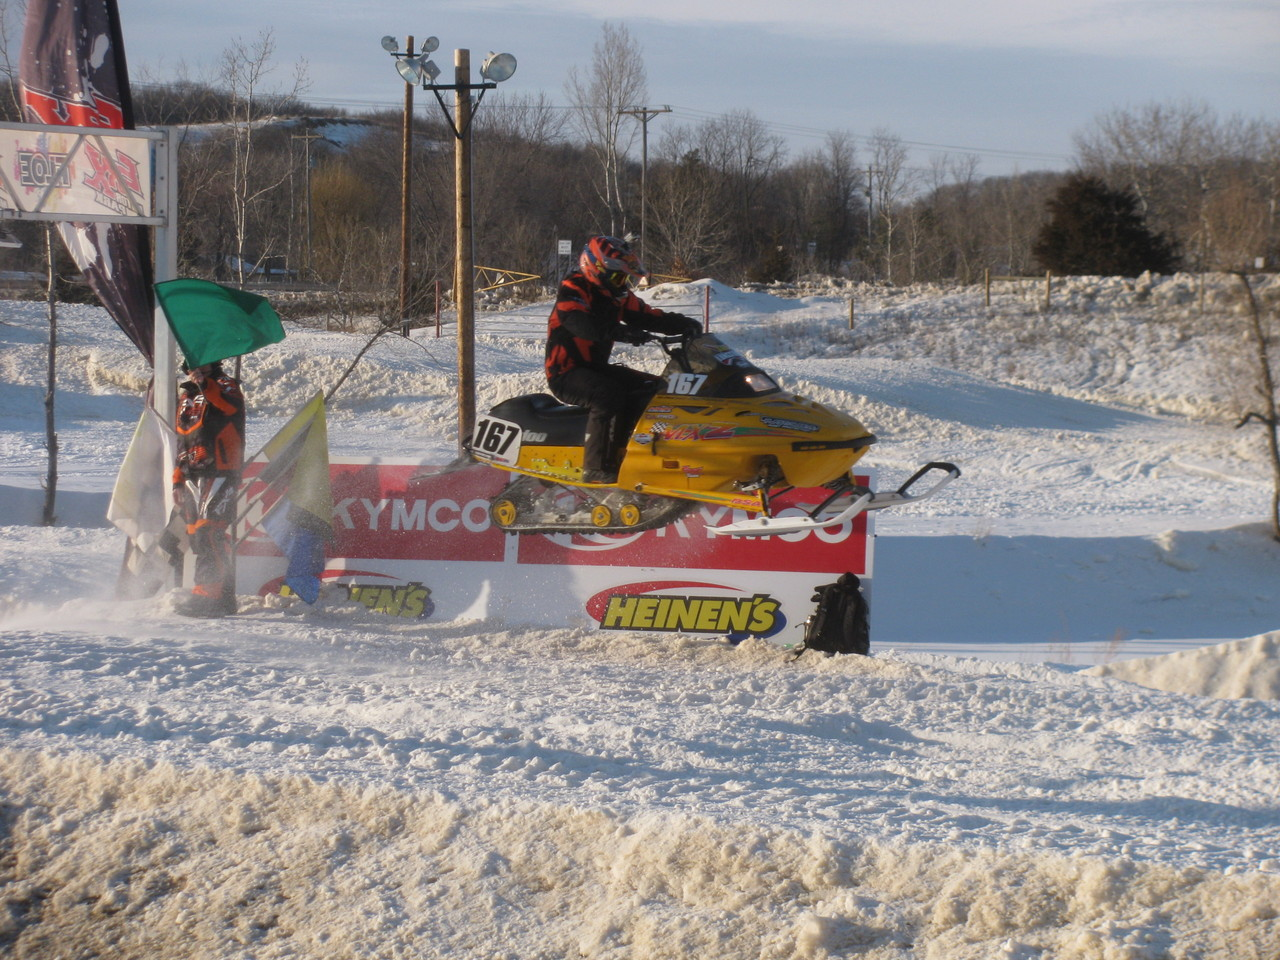 Sam Lungstrom in level flight on the Plasti-Sleeve sponsored #167 Ski-Doo.